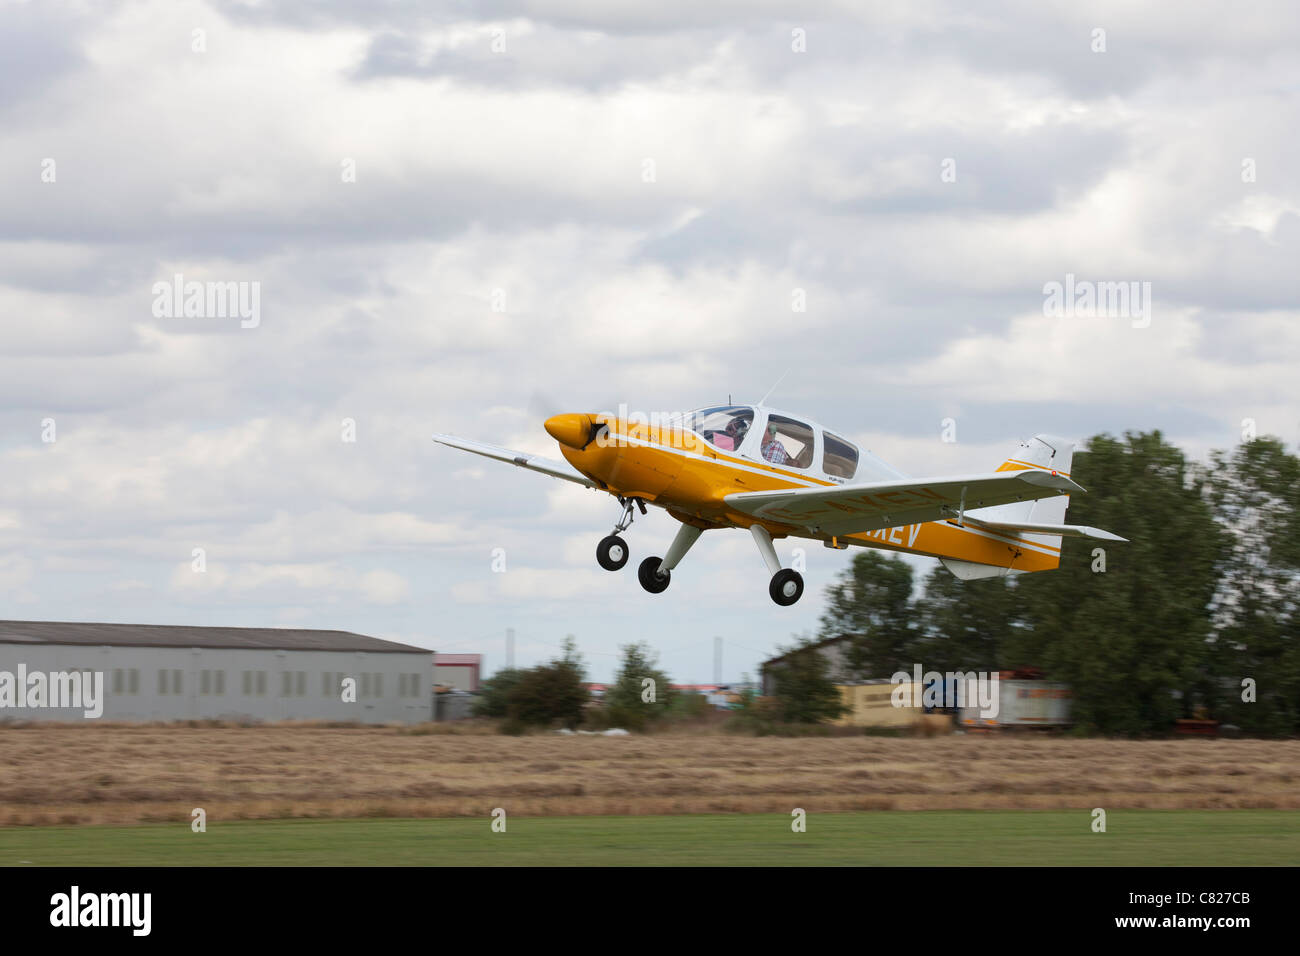 Beagle B121 Series 2 Pup 150 G-AXEV taking-off at Breighton Airfield - Stock Image